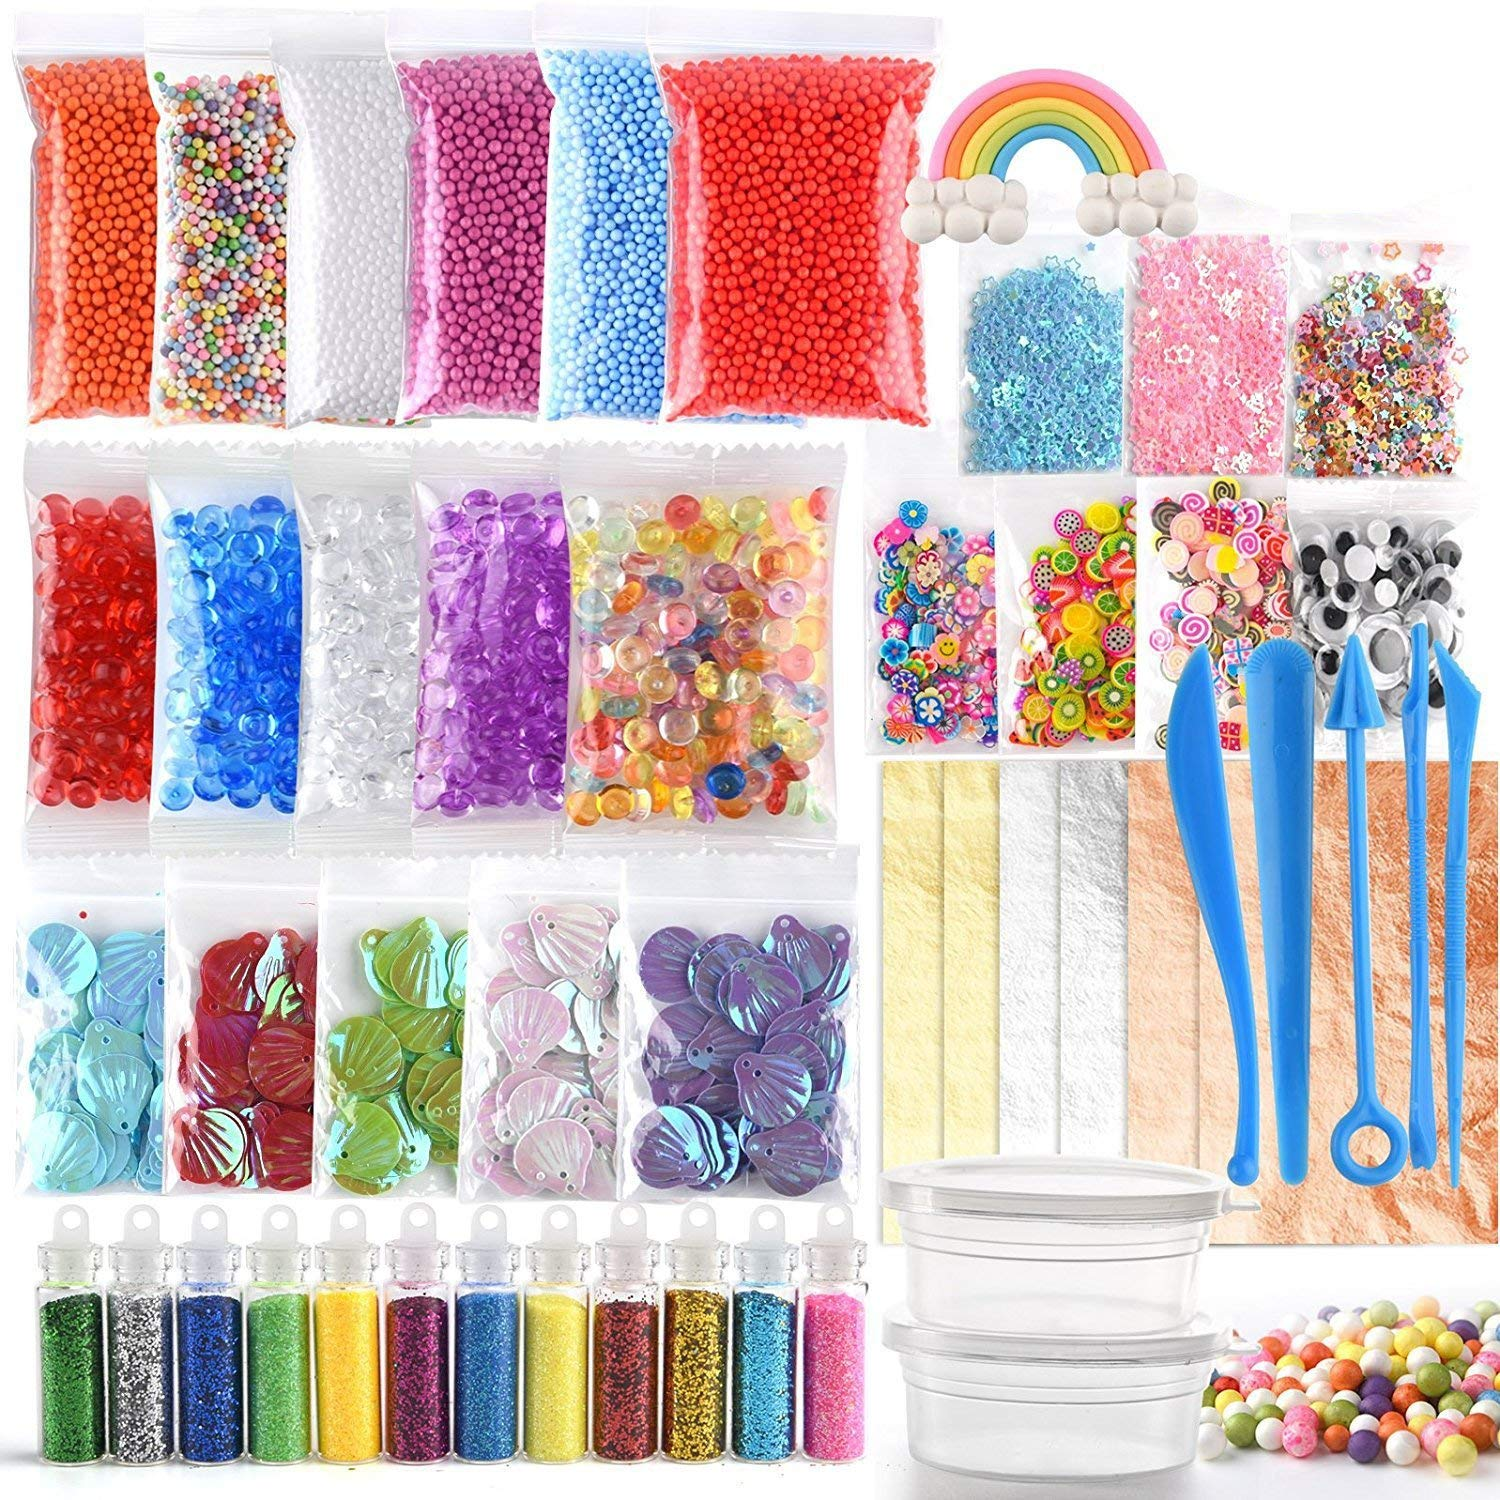 KUUQA 49 Packs Slime Supplies Kit Including Fishbowl Beads, Wobbly Eyes, Shell, Slices, Confetti, Slime Foam Beads, Slime Tools, Imitation Gold Leaf, Containers FP0037-CA